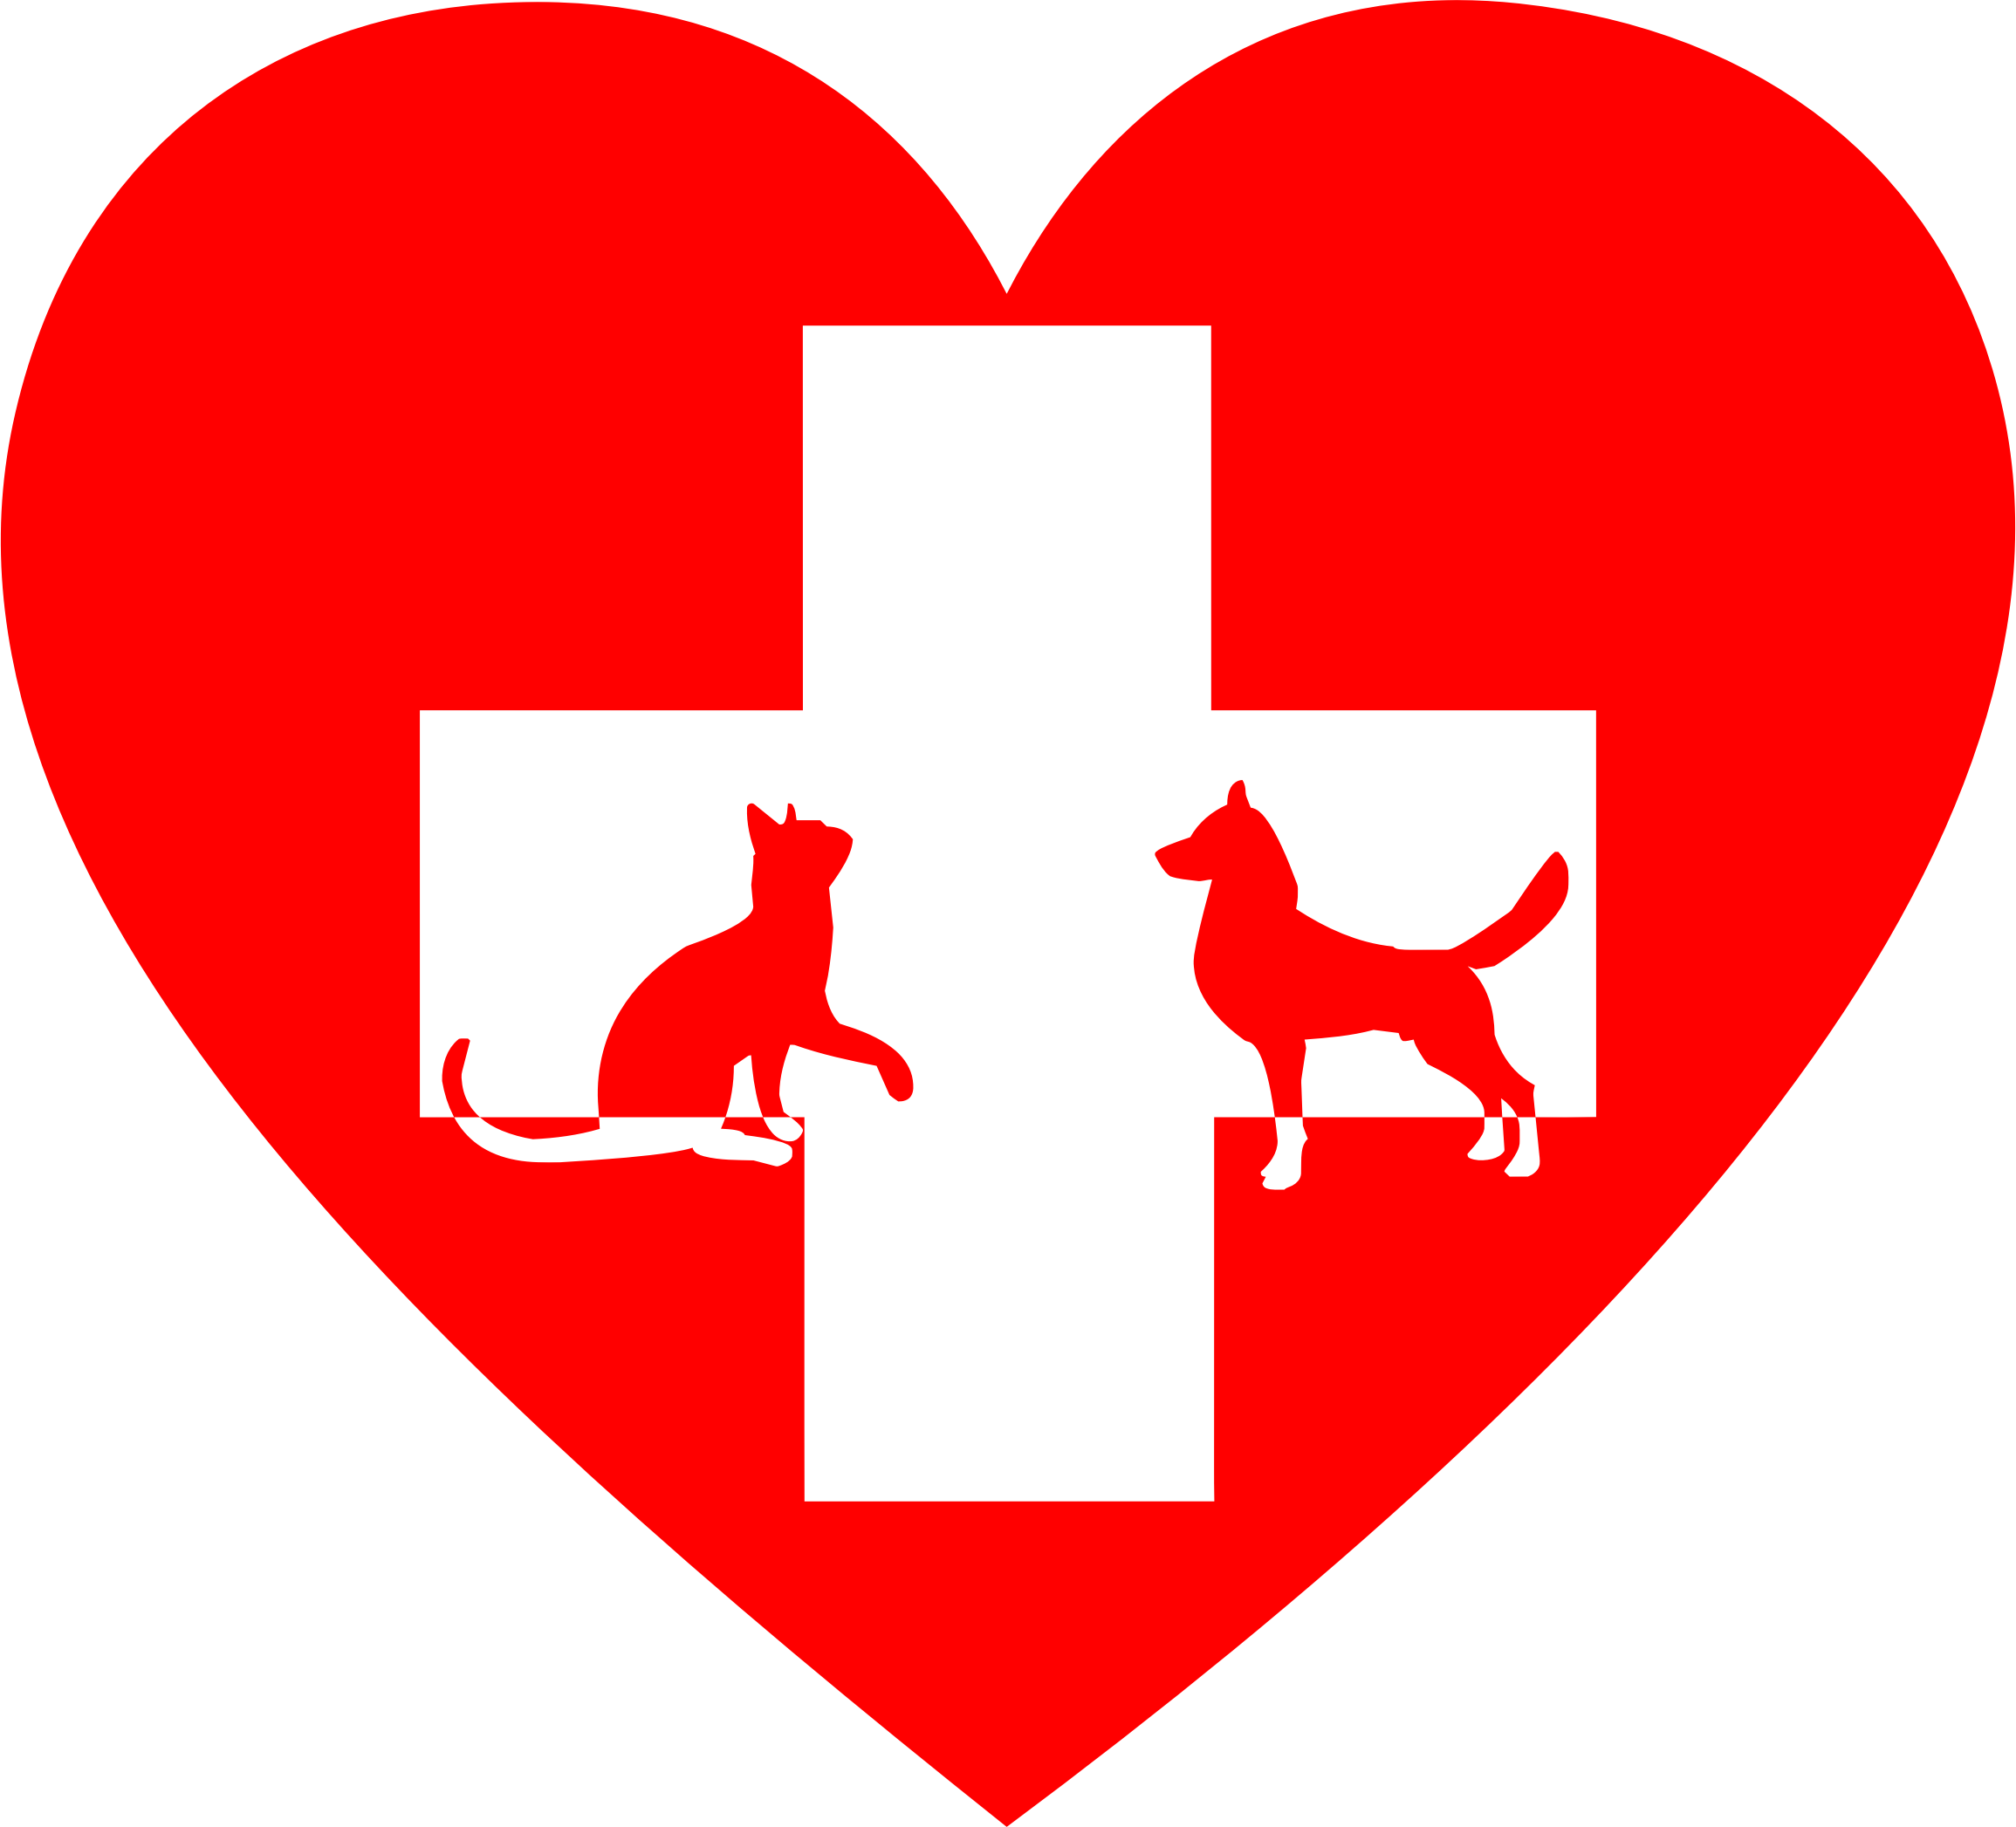 Veterinary First Aid Heart by GDJ